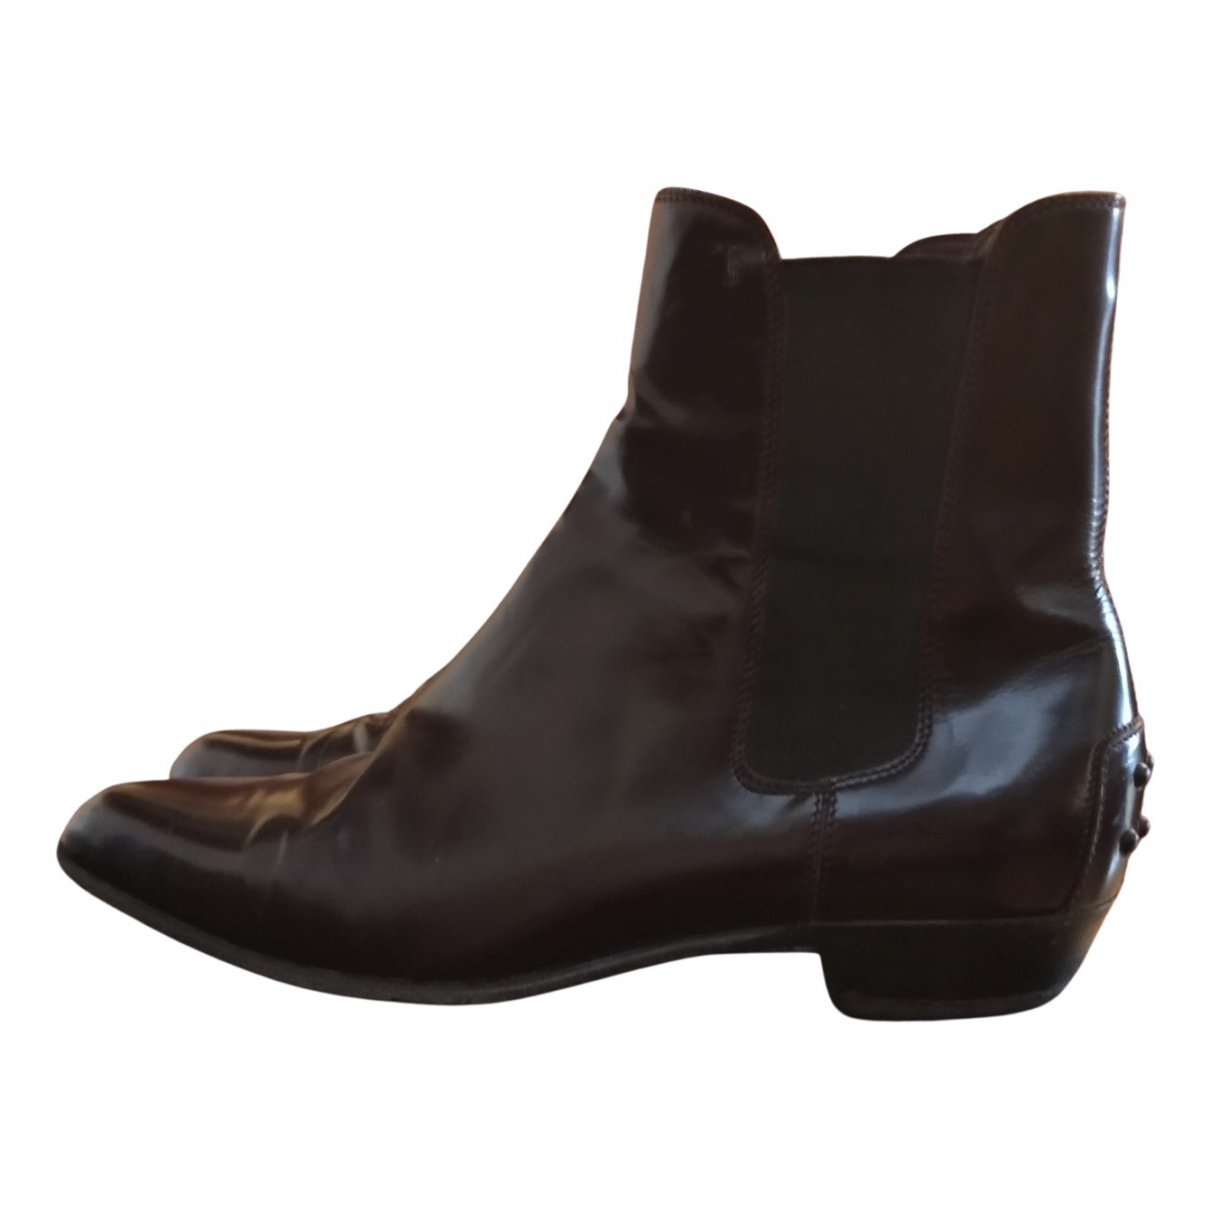 Tod's N Burgundy Leather Ankle boots for Women 36 EU